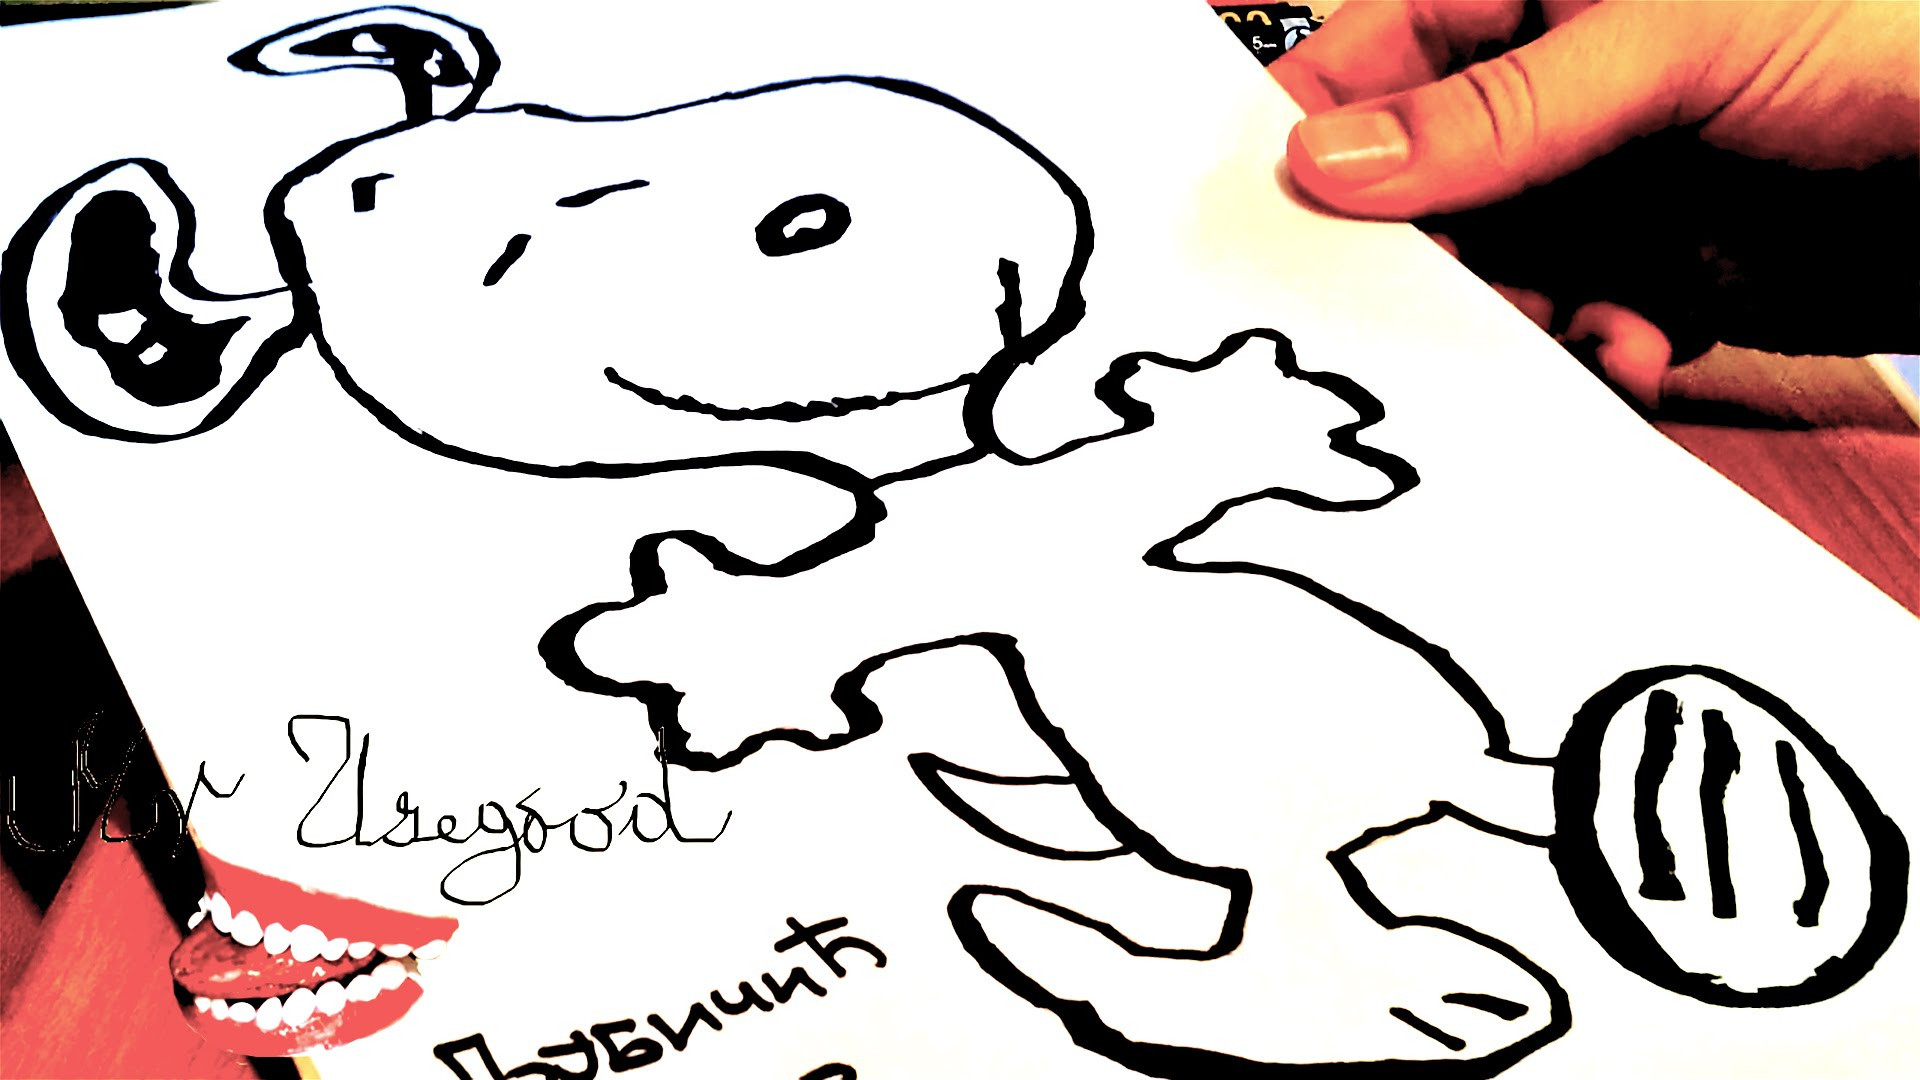 Res: 1920x1080, Cool Easy Drawings For Kids How To Draw Snoopy Easy Dancing For Kids |  #mrusegoodart